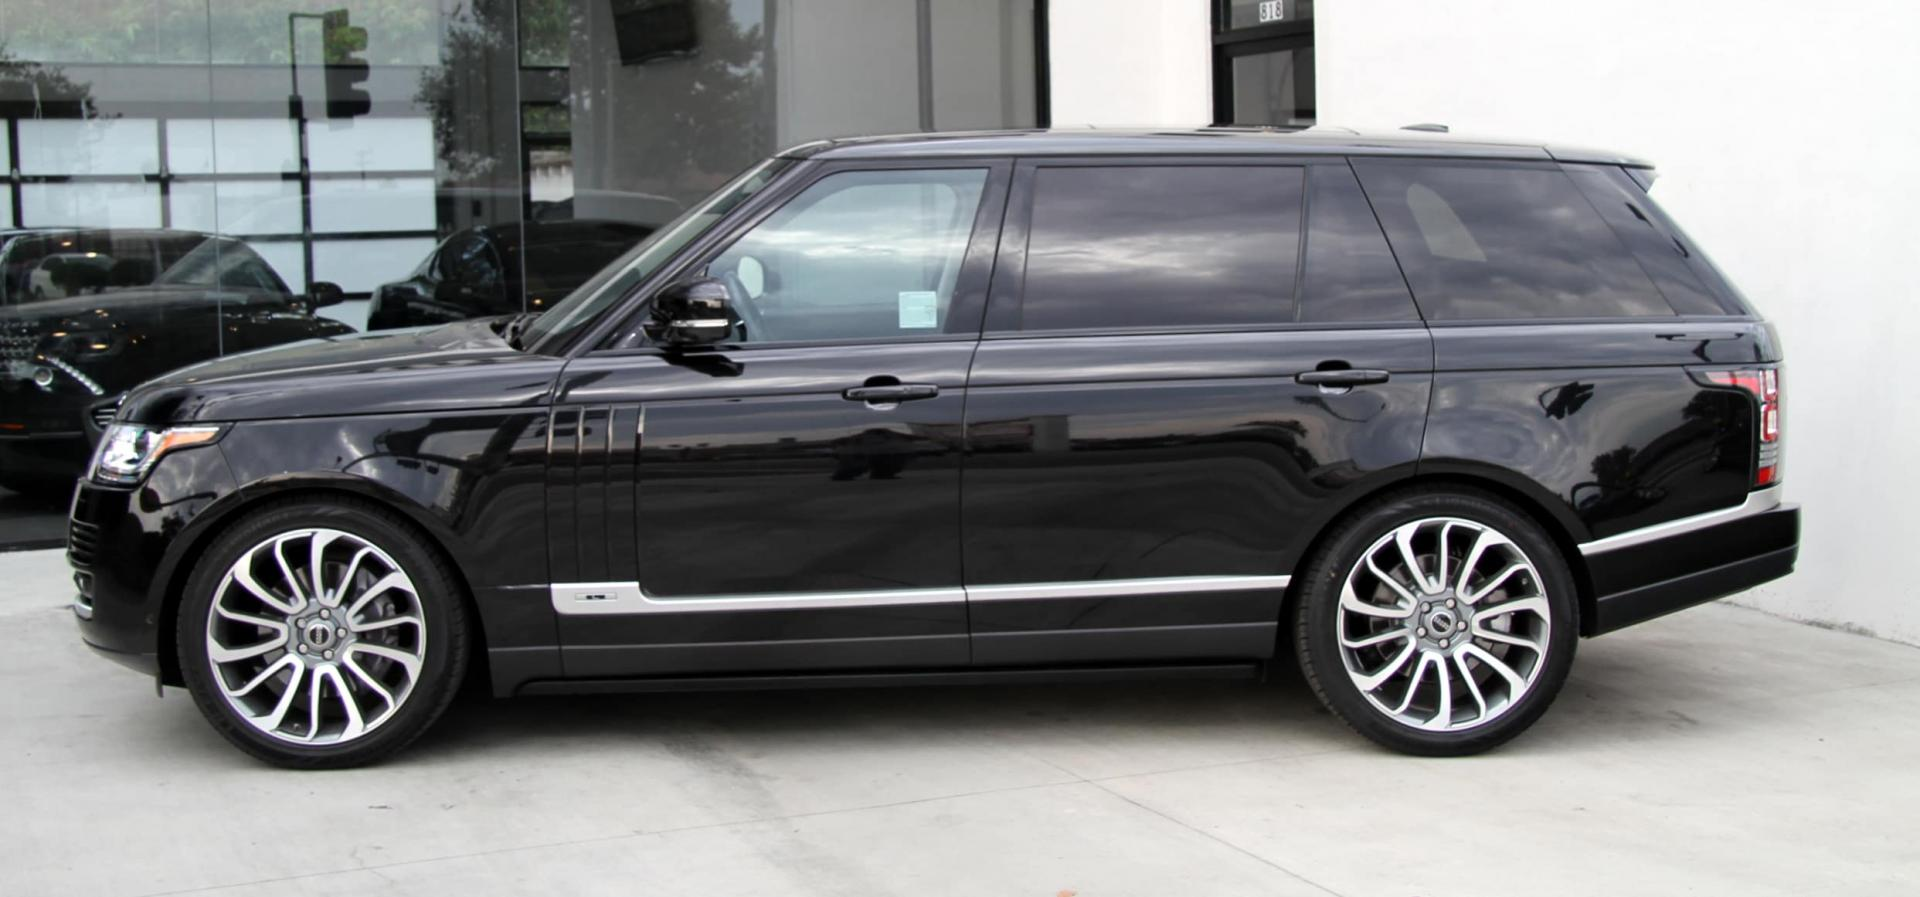 2015 land rover range rover supercharged long wheel. Black Bedroom Furniture Sets. Home Design Ideas